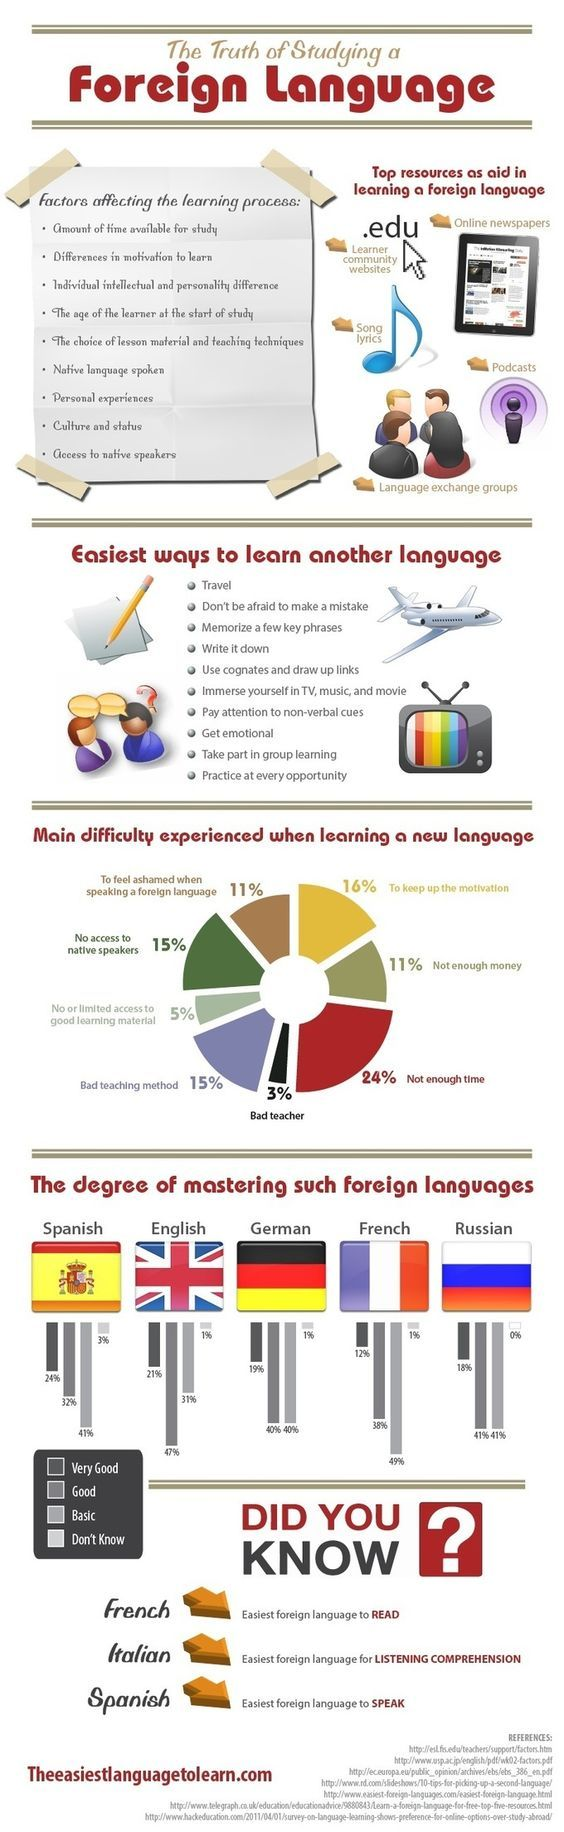 Science Essays Infographic  The Truth Of Studying A Foreign Language Thesis Statement Examples Essays also English Essay About Environment Infographic  The Truth Of Studying A Foreign Language  Language  Model Essay English